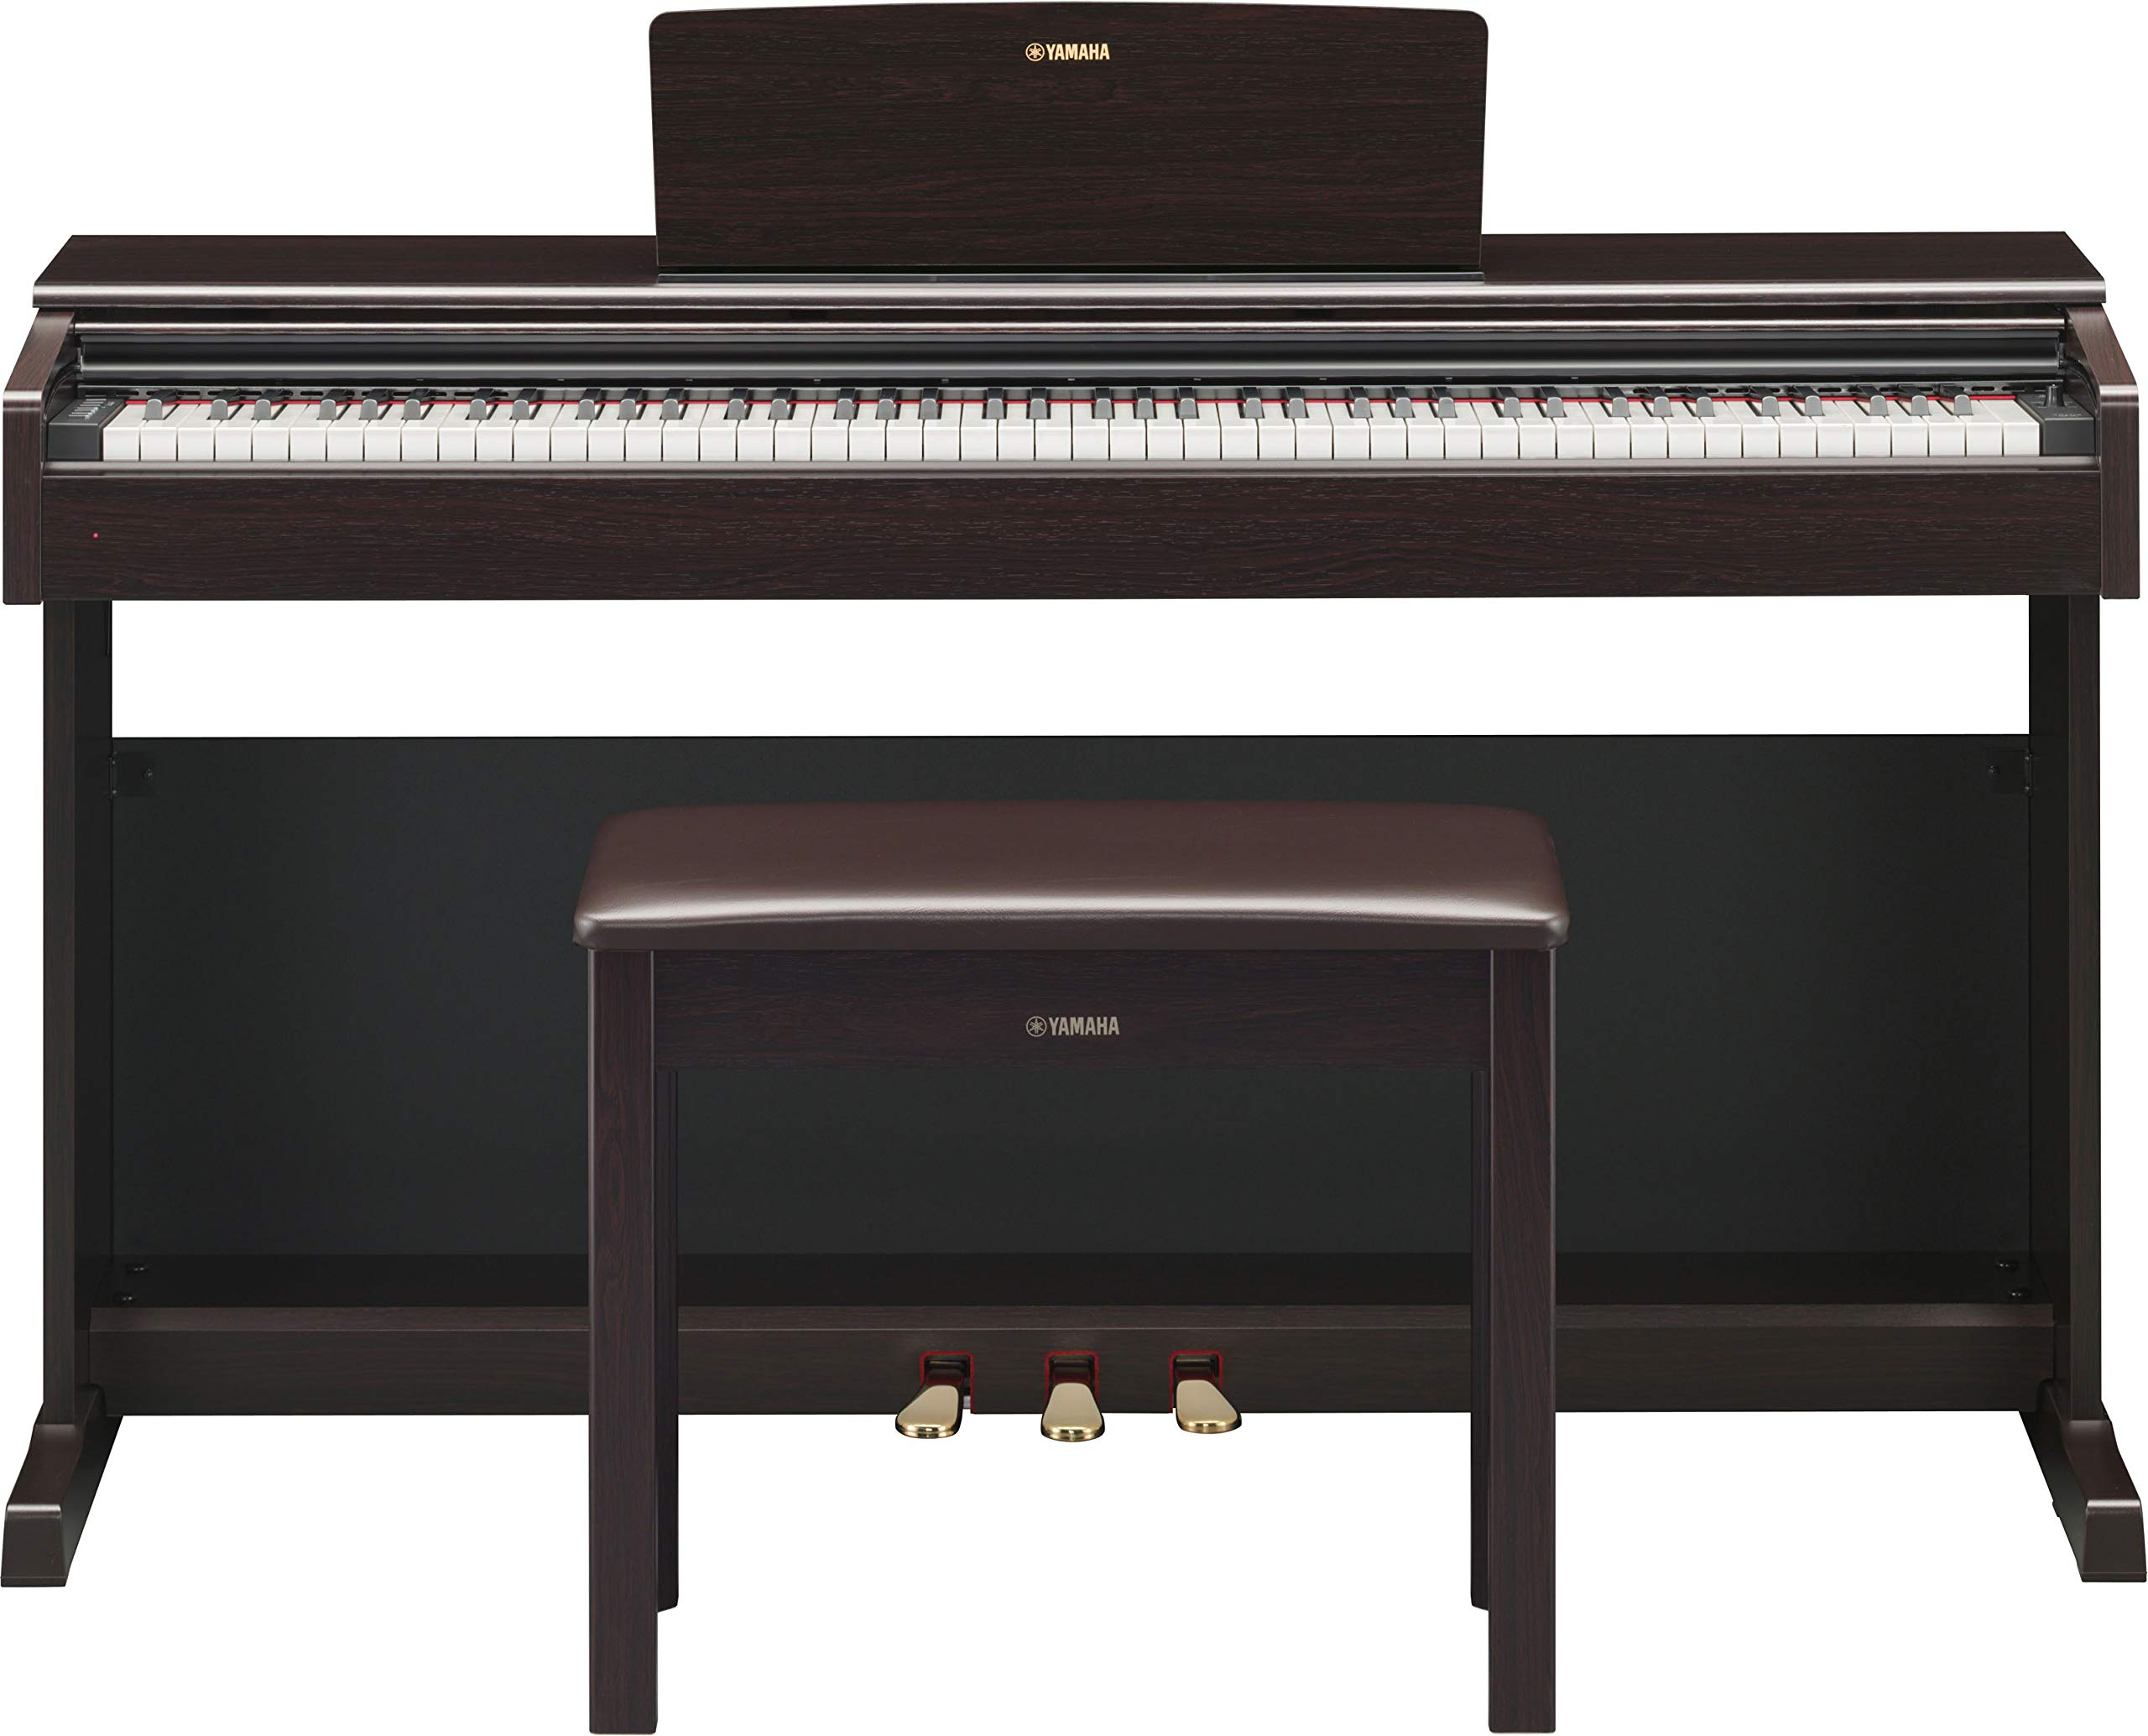 Yamaha Arius YDP-144 Traditional Console Digital Piano - Rosewood Bundle with Furniture Bench, Headphones, Fast Track Music Book, Online Lessons, Austin Bazaar Instructional DVD, and Polishing Cloth by Yamaha (Image #2)